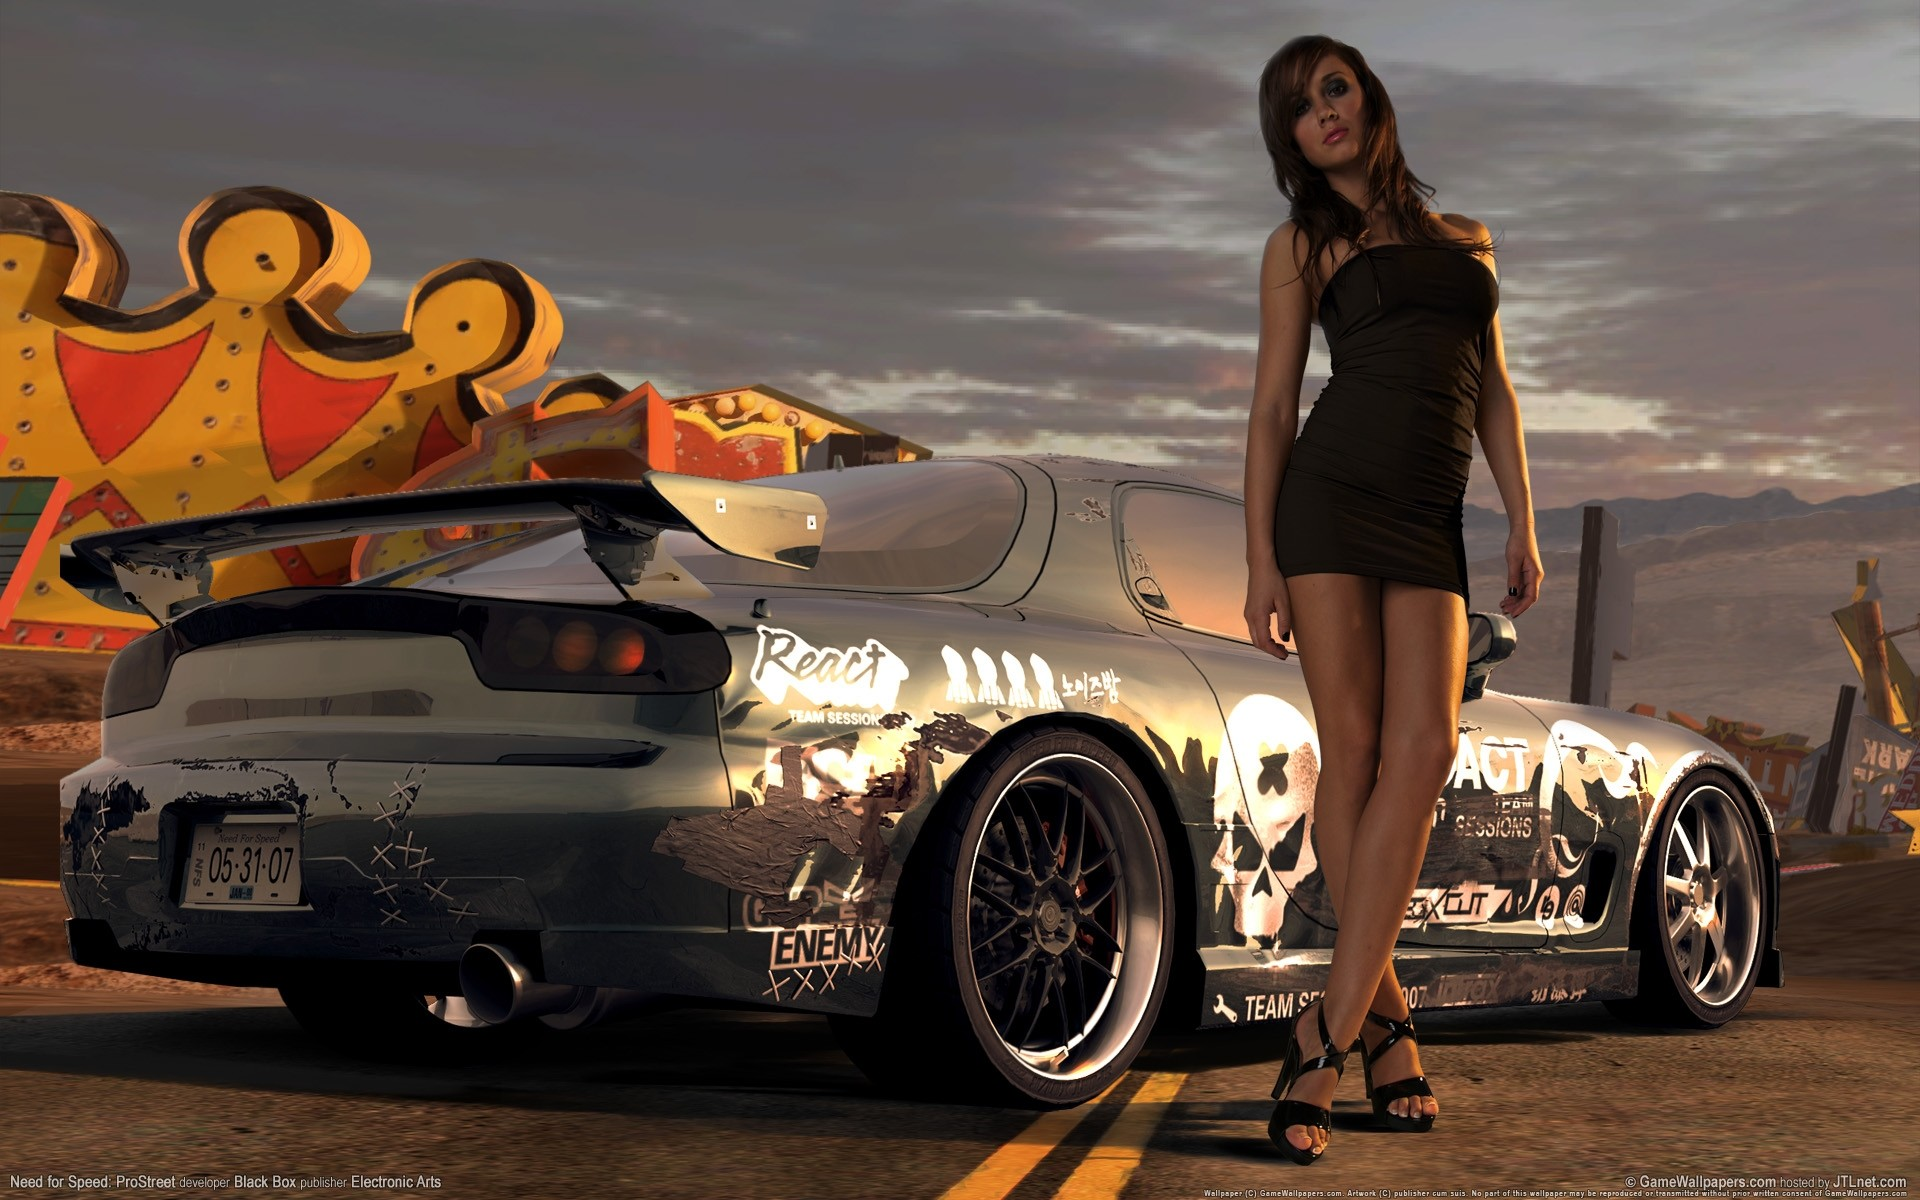 Res: 1920x1200, Awesome Street Racing Cars Wallpaper with Girls